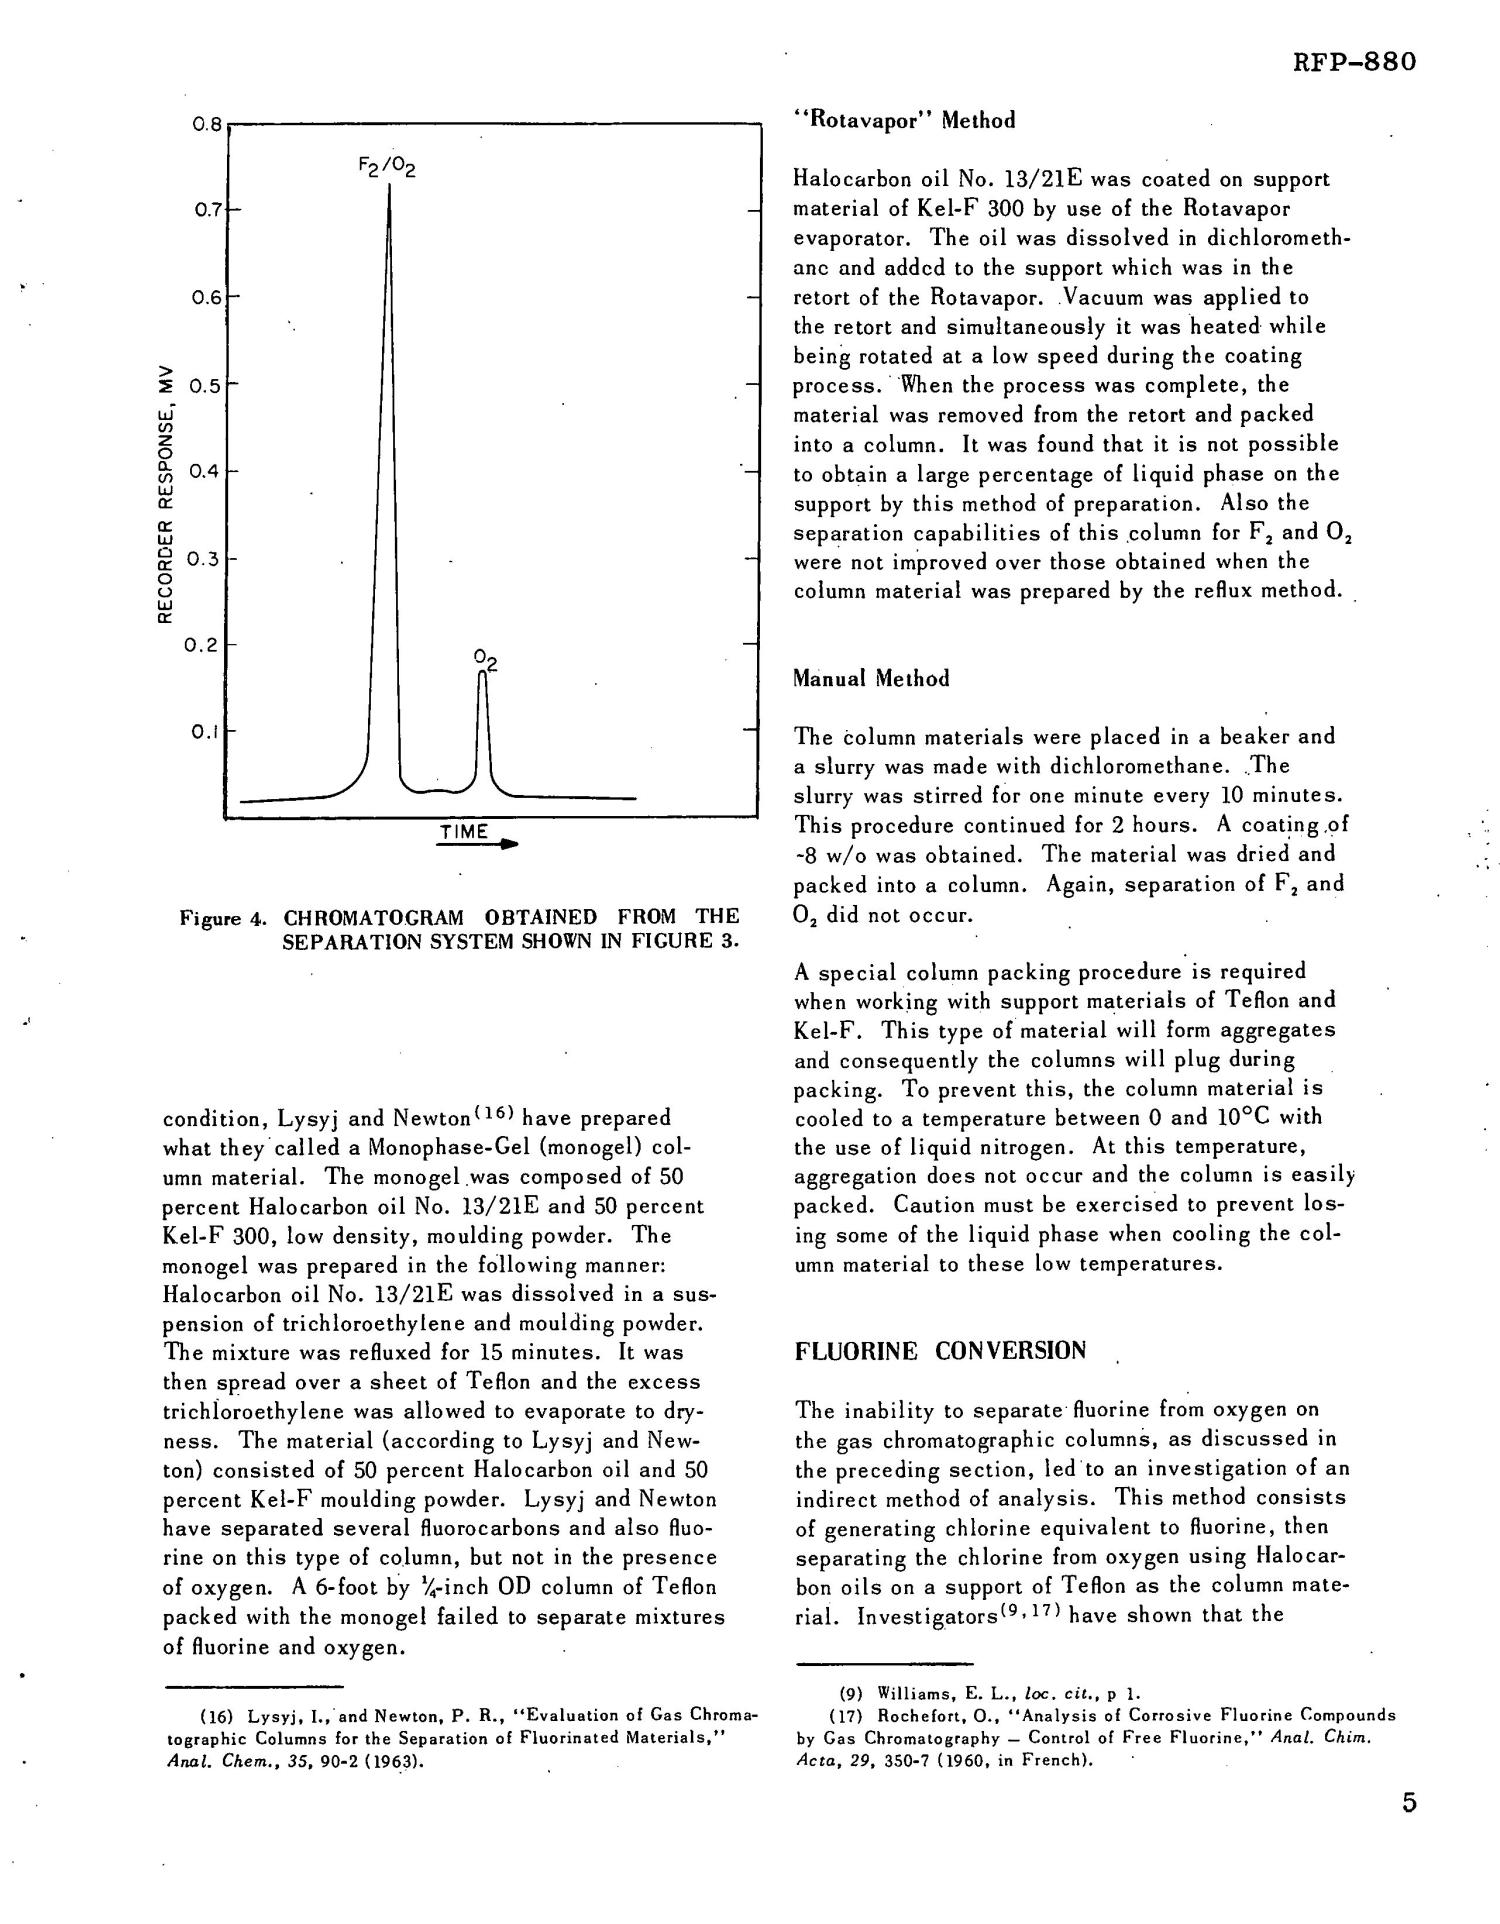 GAS CHROMATOGRAPHIC INVESTIGATIONS FOR THE DETERMINATION OF